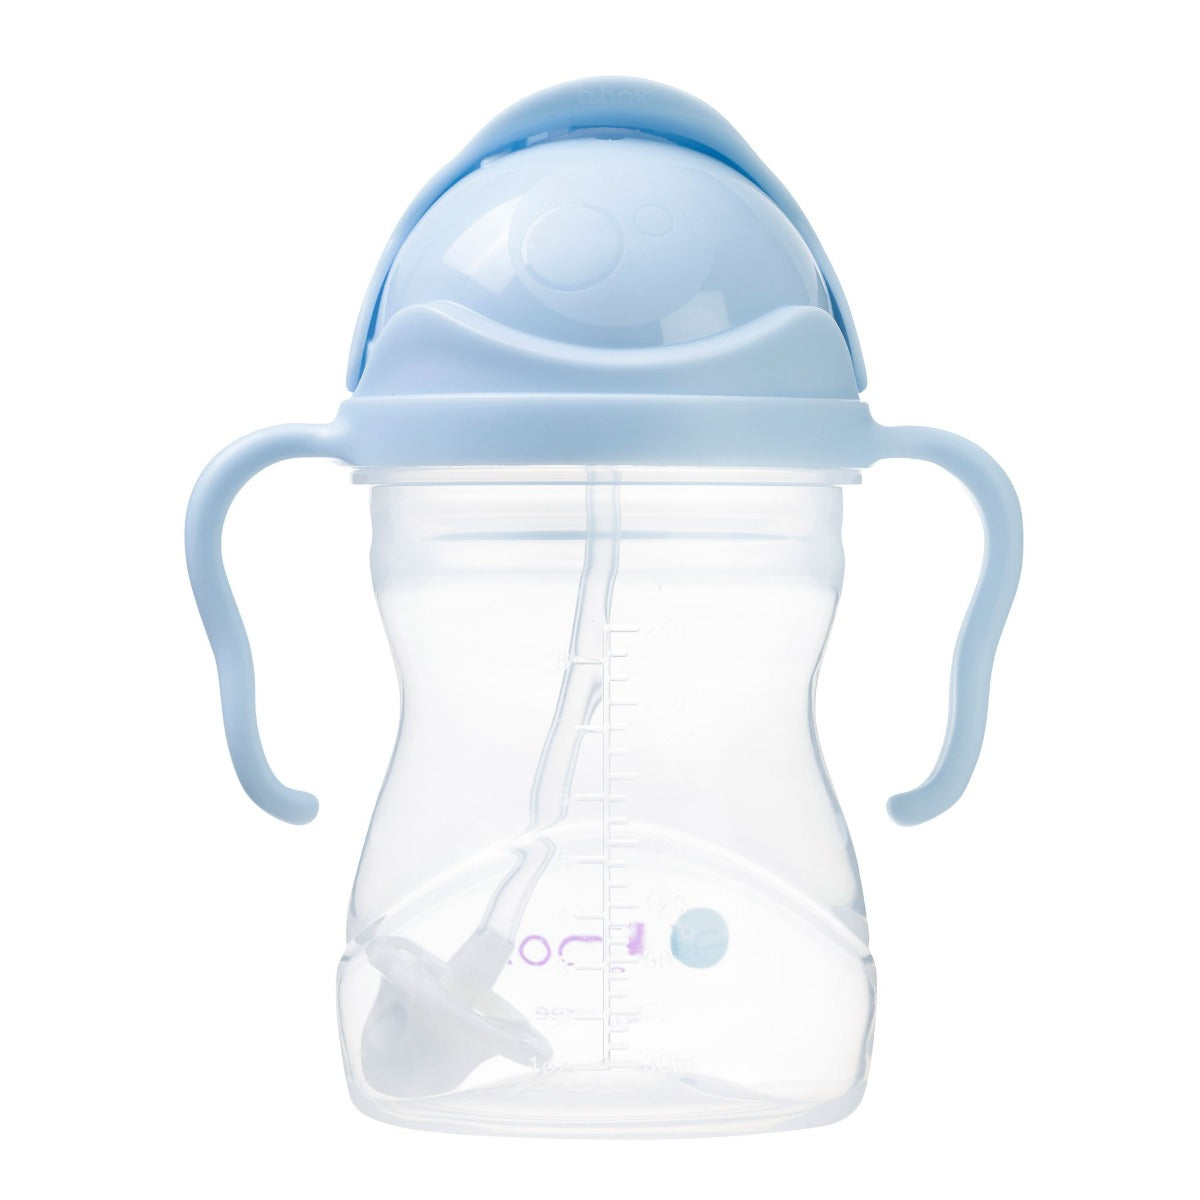 *b.box* sippy cup シッピーカップ-bubblegum - b.box Japan